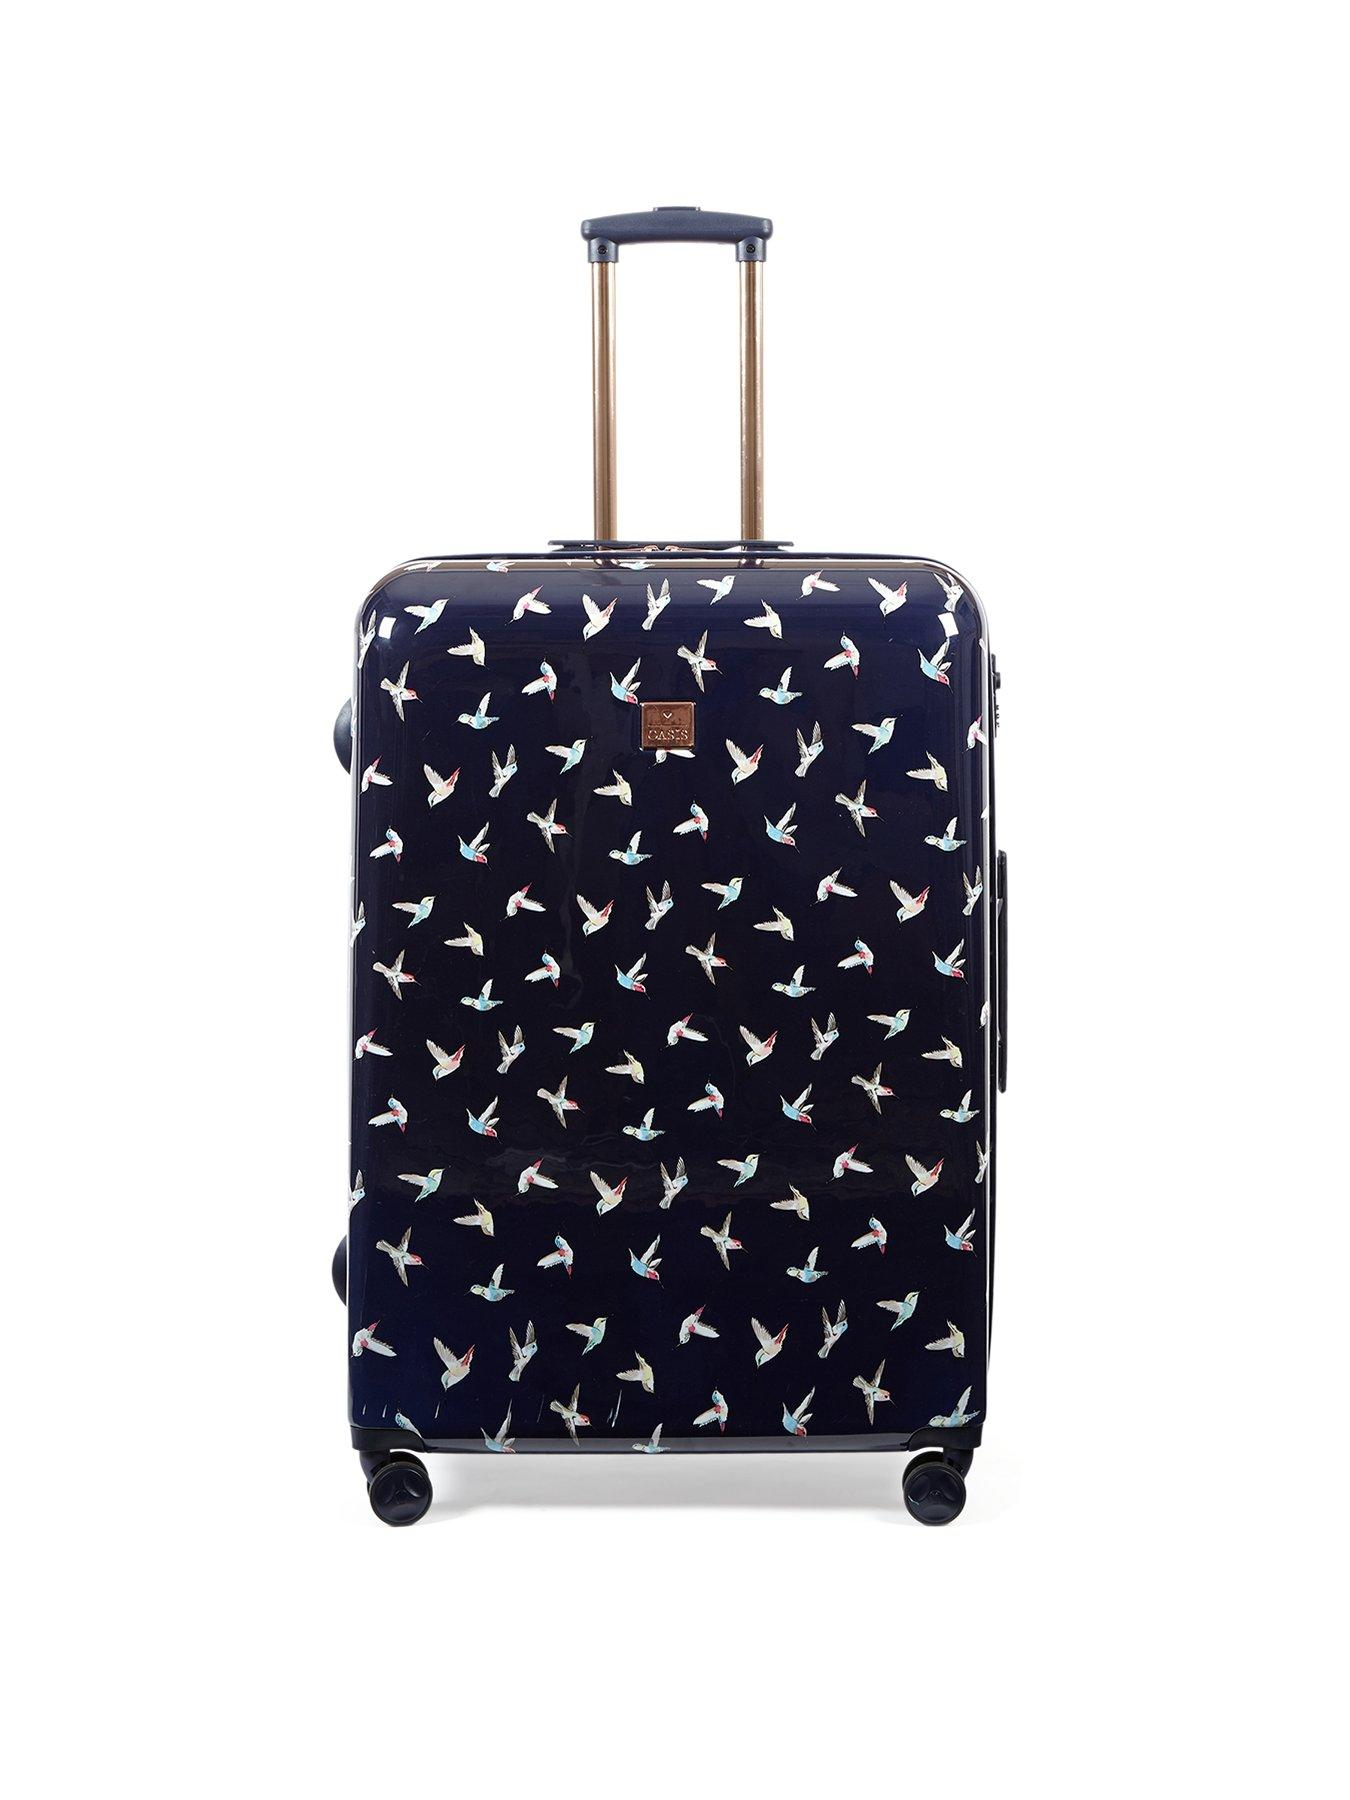 4 Size Art Wave Pattern Printed Business Luggage Protector Travel Baggage Suitcase Cover